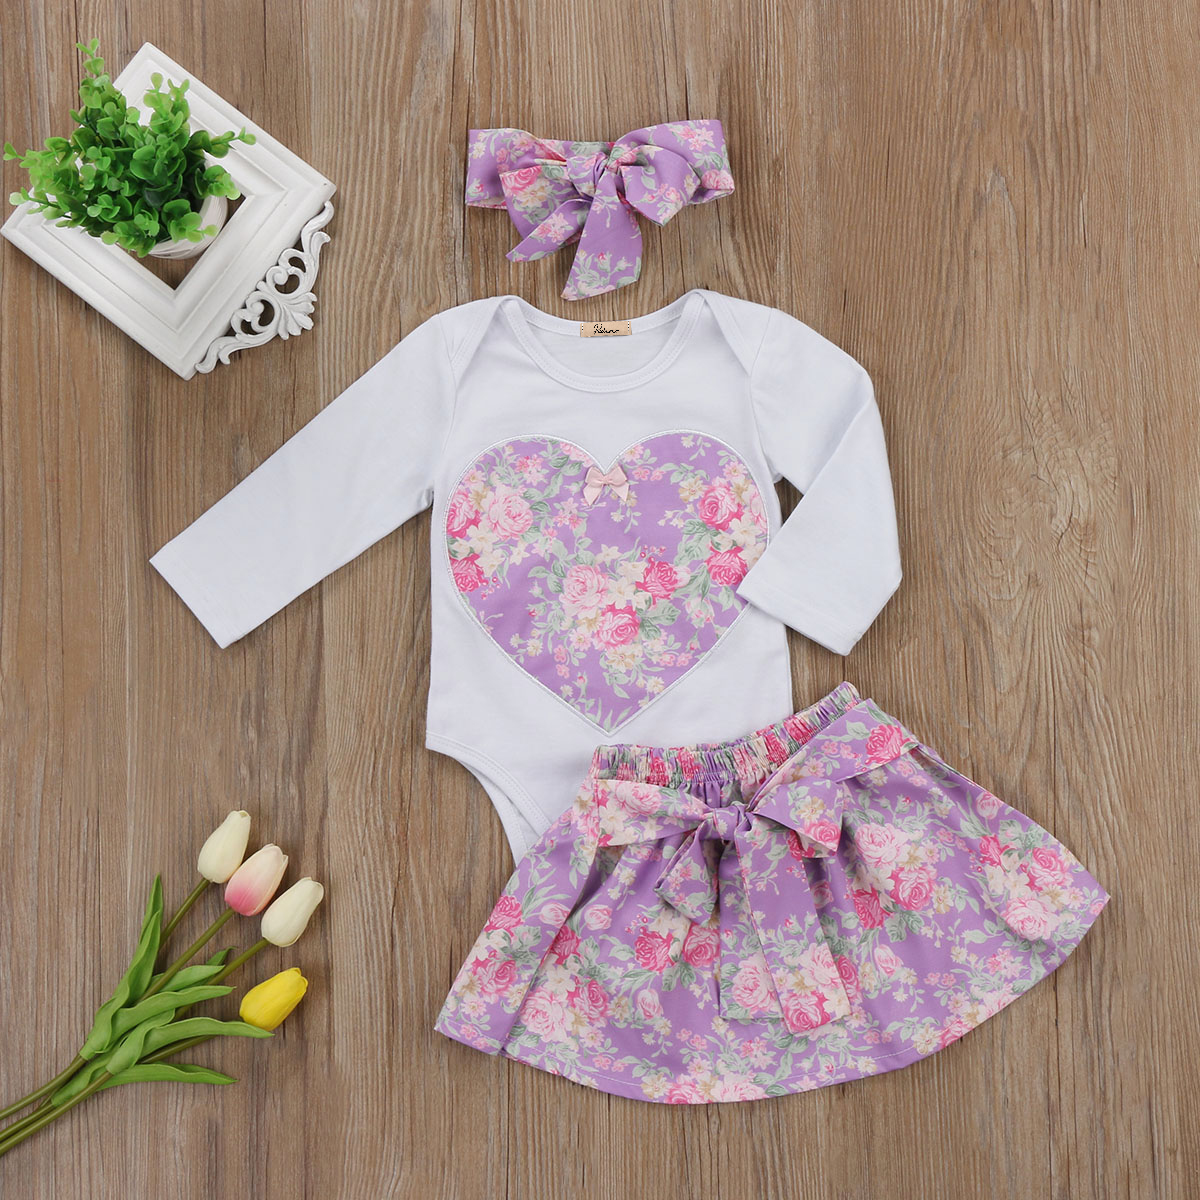 princess baby girl clothes set Newborn baby girl heart shape floral romper +purple flower skirts headband cute baby girl outfits